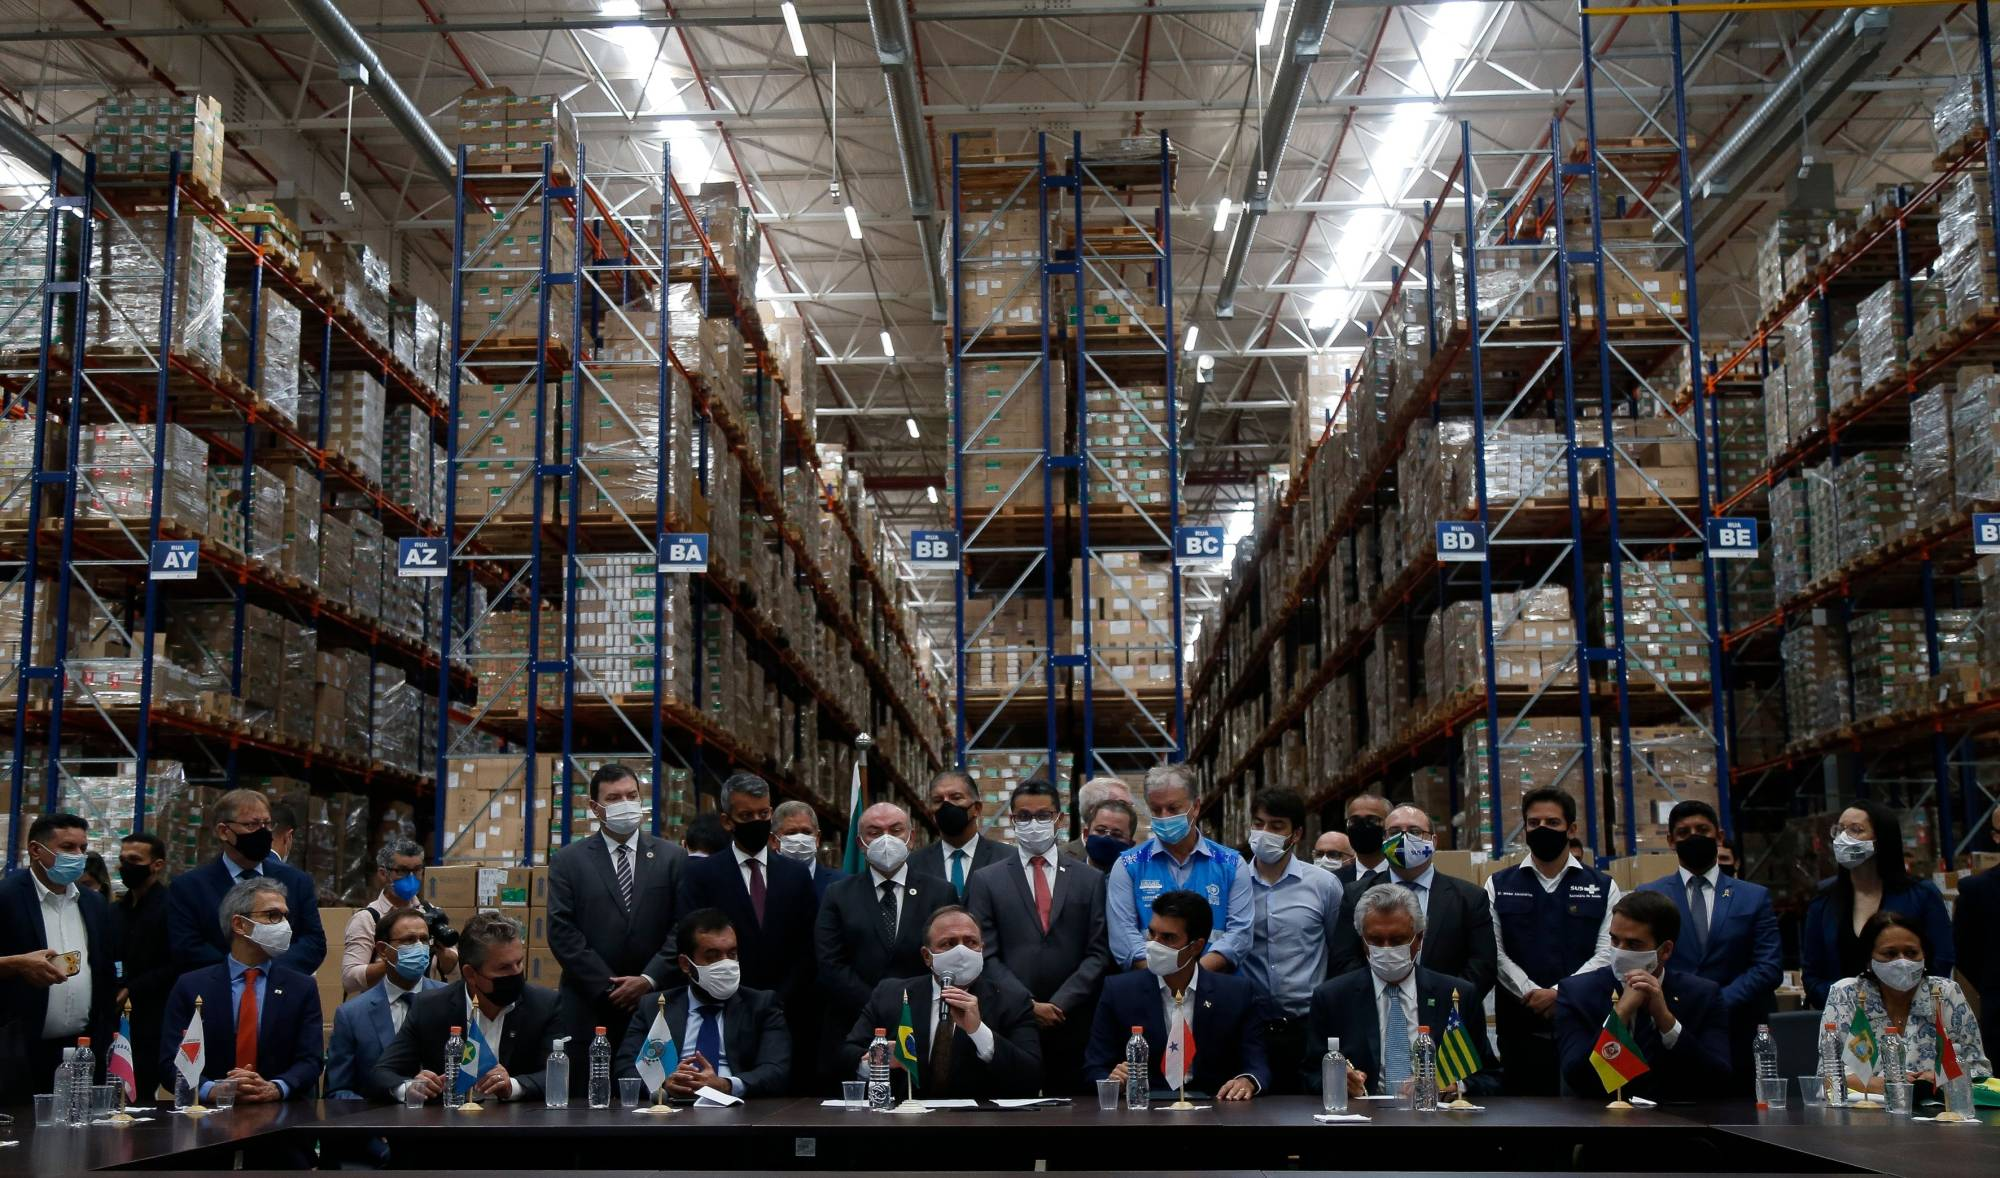 Brazil's Health Minister, Eduardo Pazuello (center), holds a news conference at a distribution center for Sinovac Biotech's COVID-19 vaccine in Guarulhos, Sao Paulo, on Monday. | AFP-JIJI